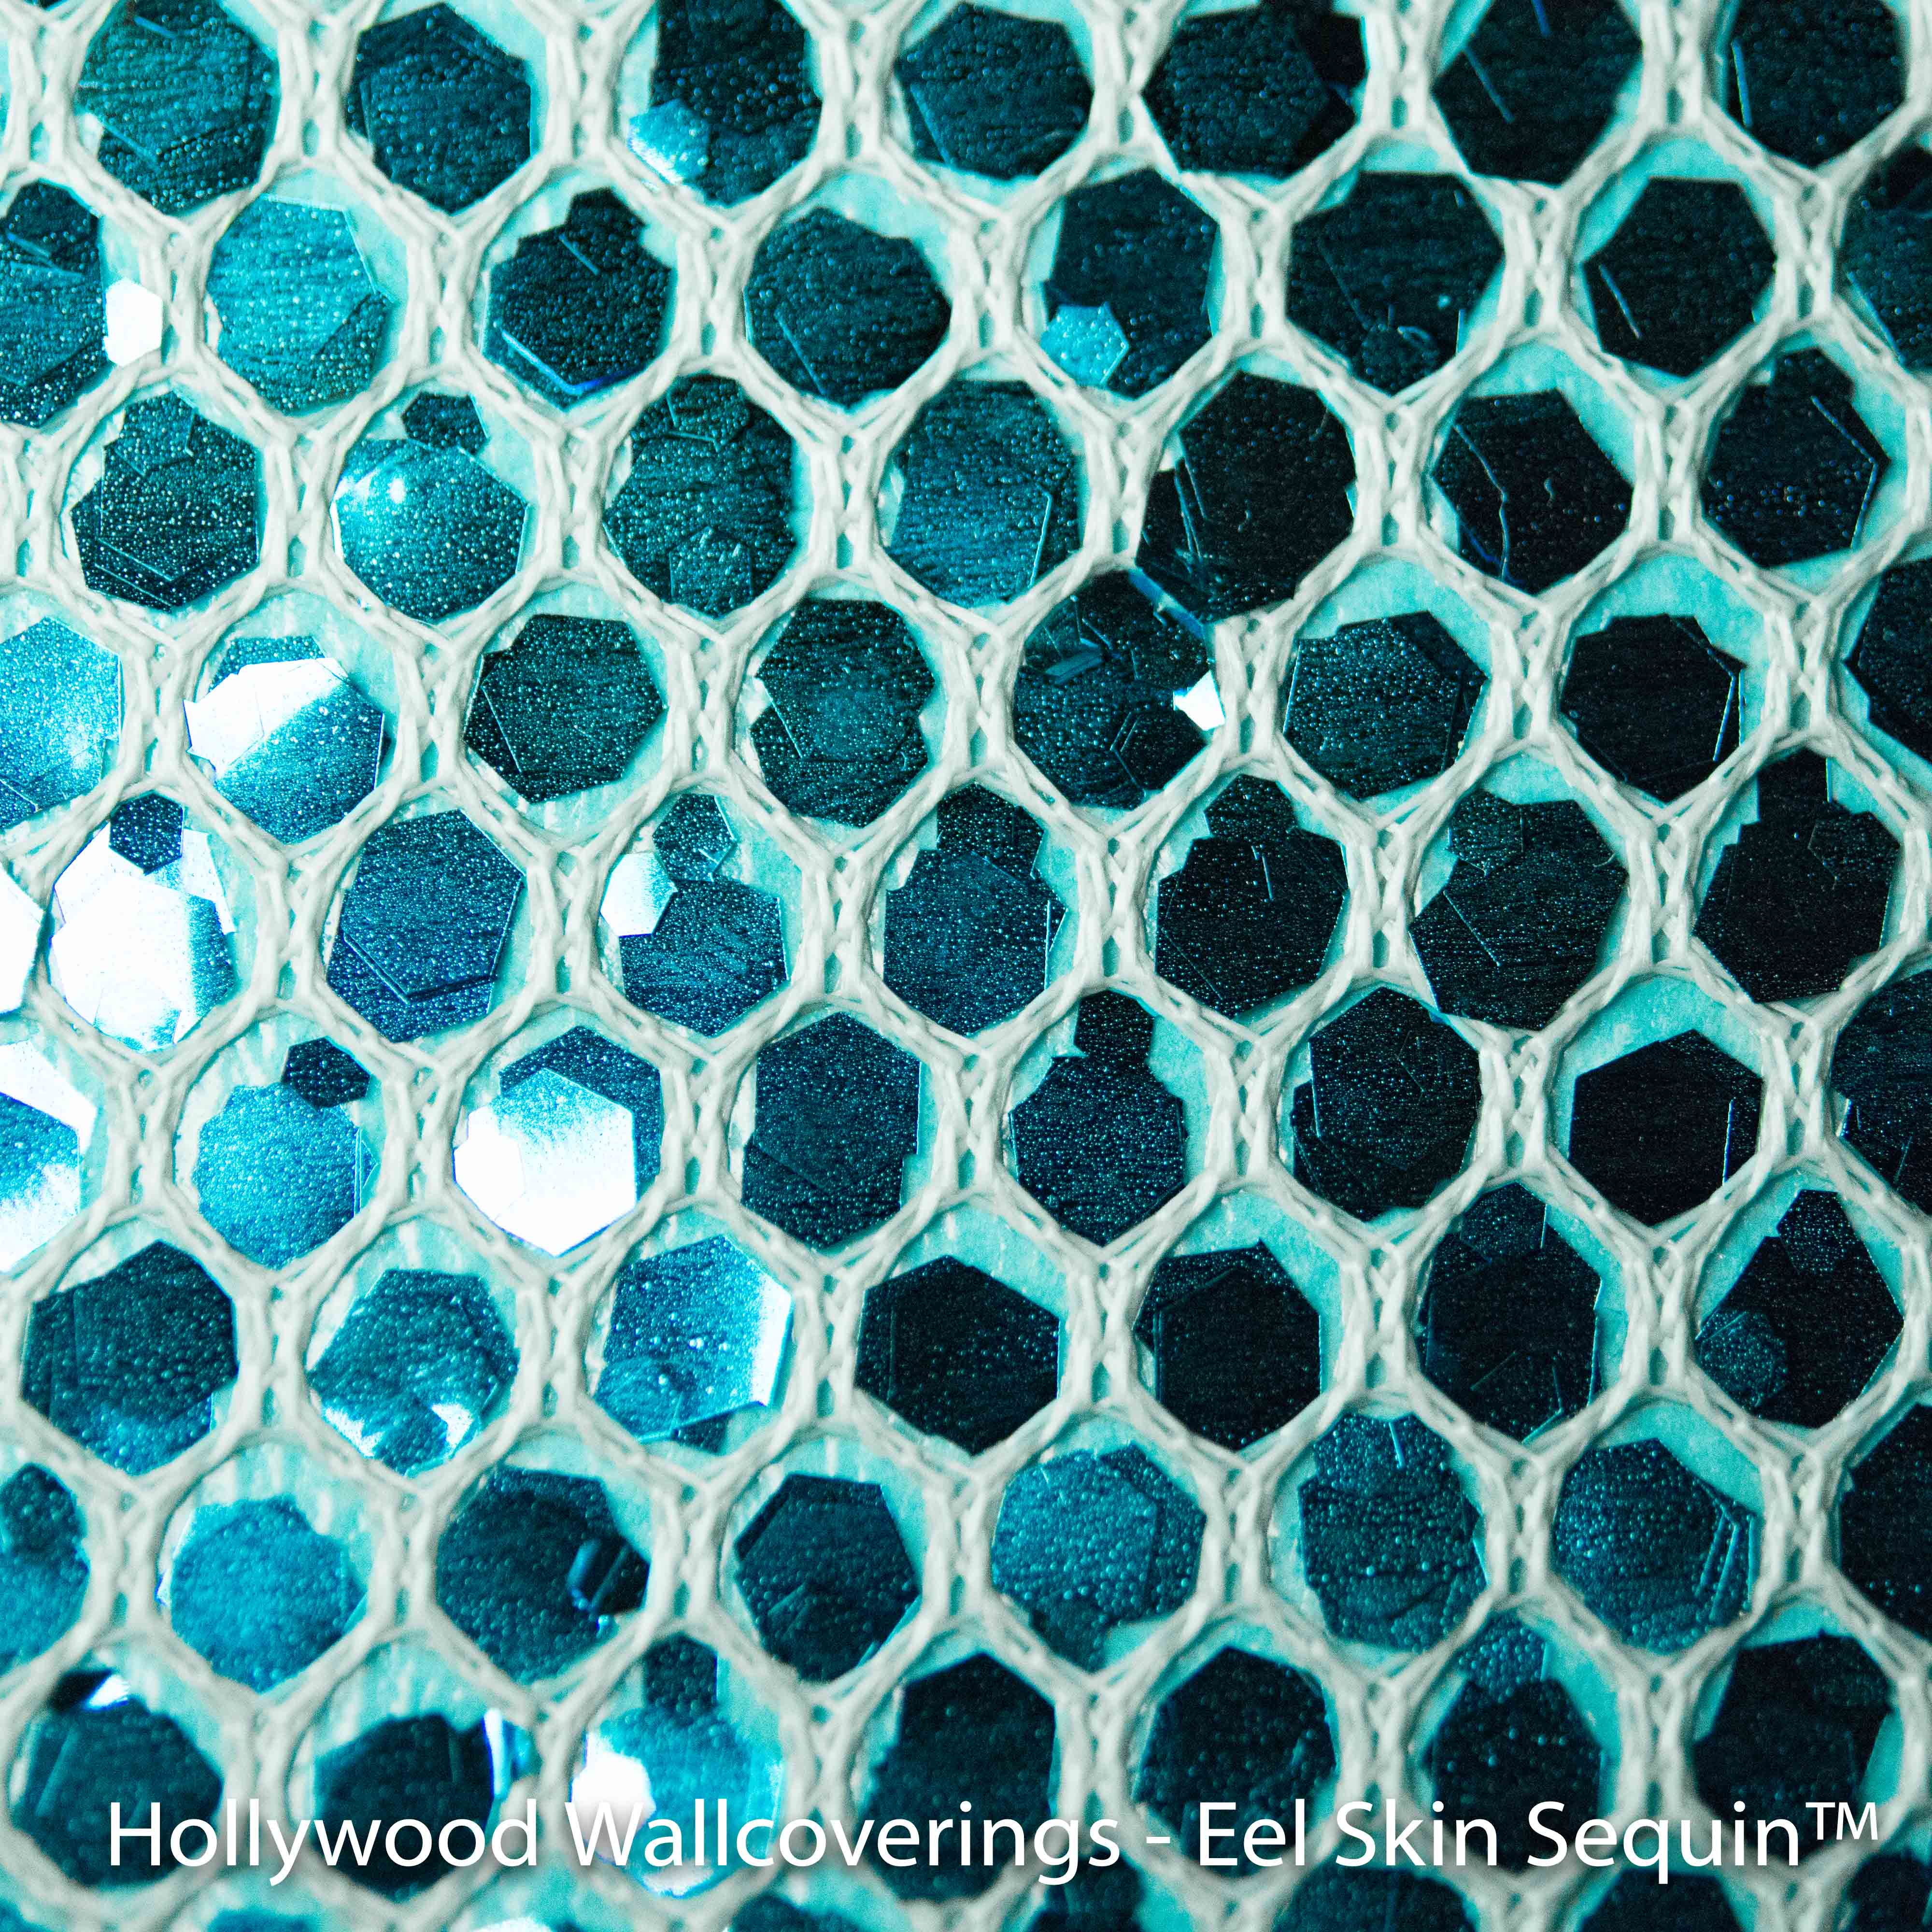 Eel-Skin-Sequin-GLM-Home-Color-Aqua-Teal-Blue-DesignerWallcoverings-com-Luxury-Wallp-wallpaper-wp4605609